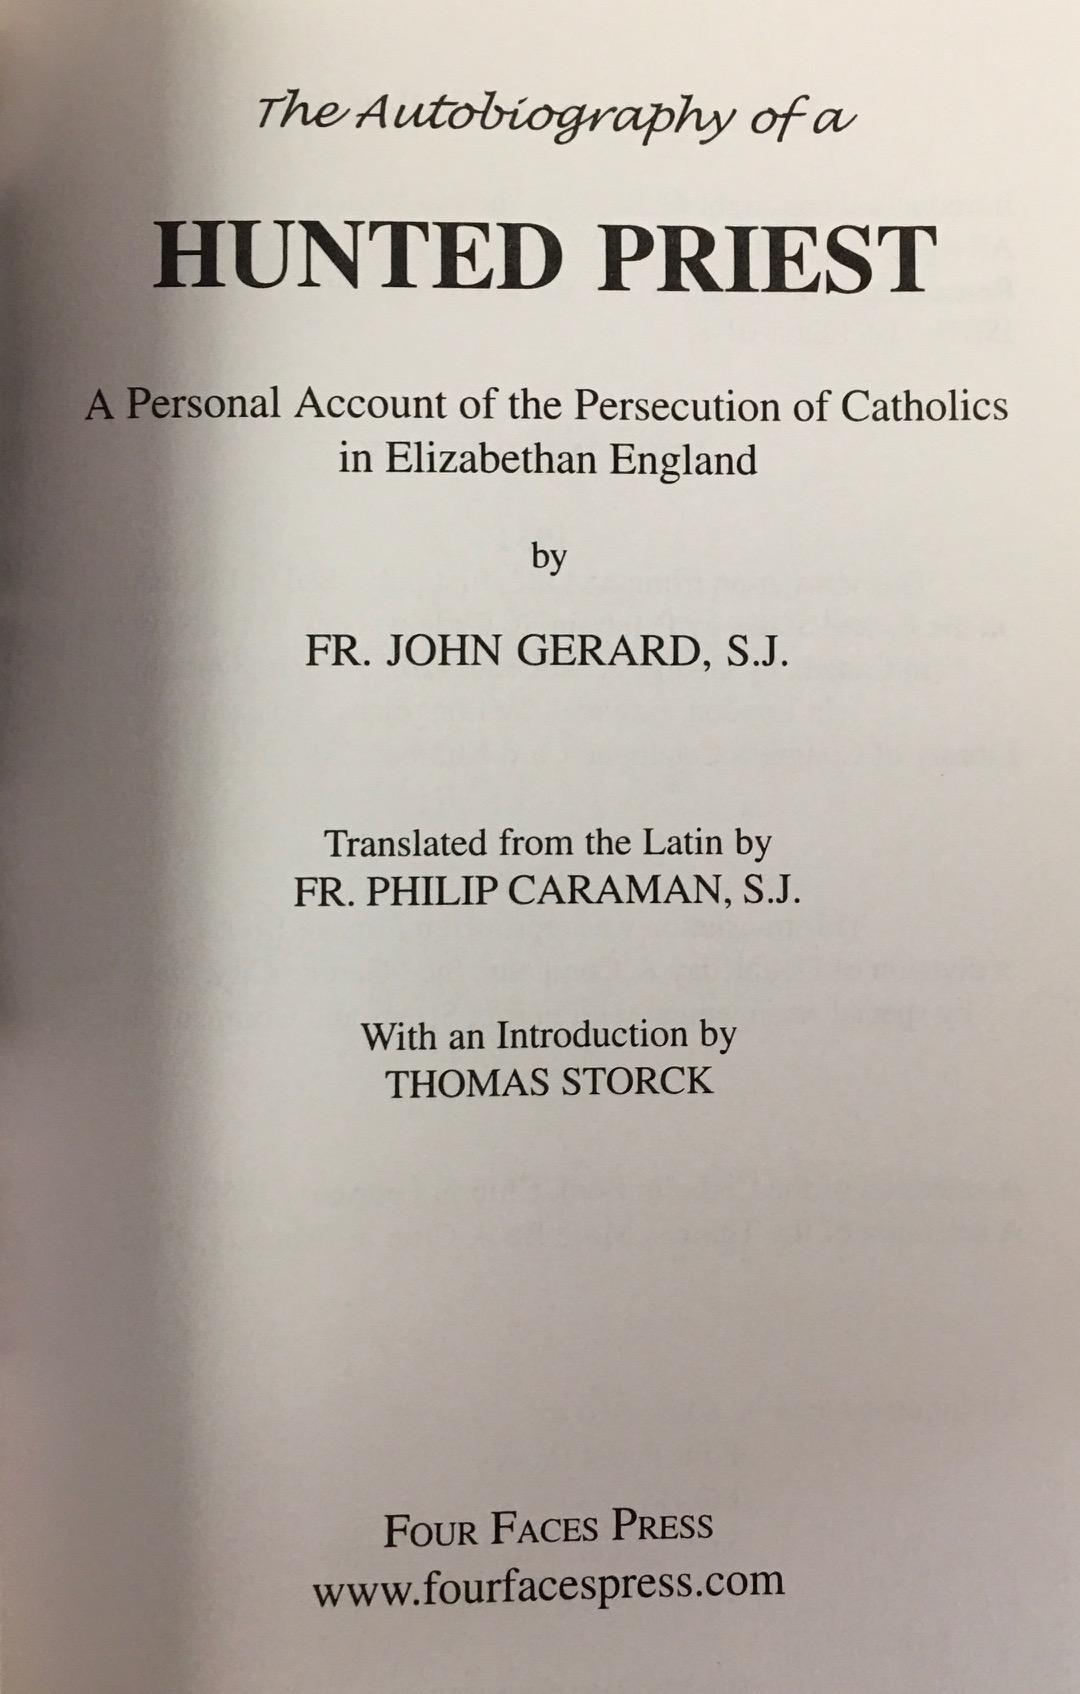 Image for The Autobiography of a Hunted Priest: A Personal Account of the Persecution of Catholics in Elizabethan England